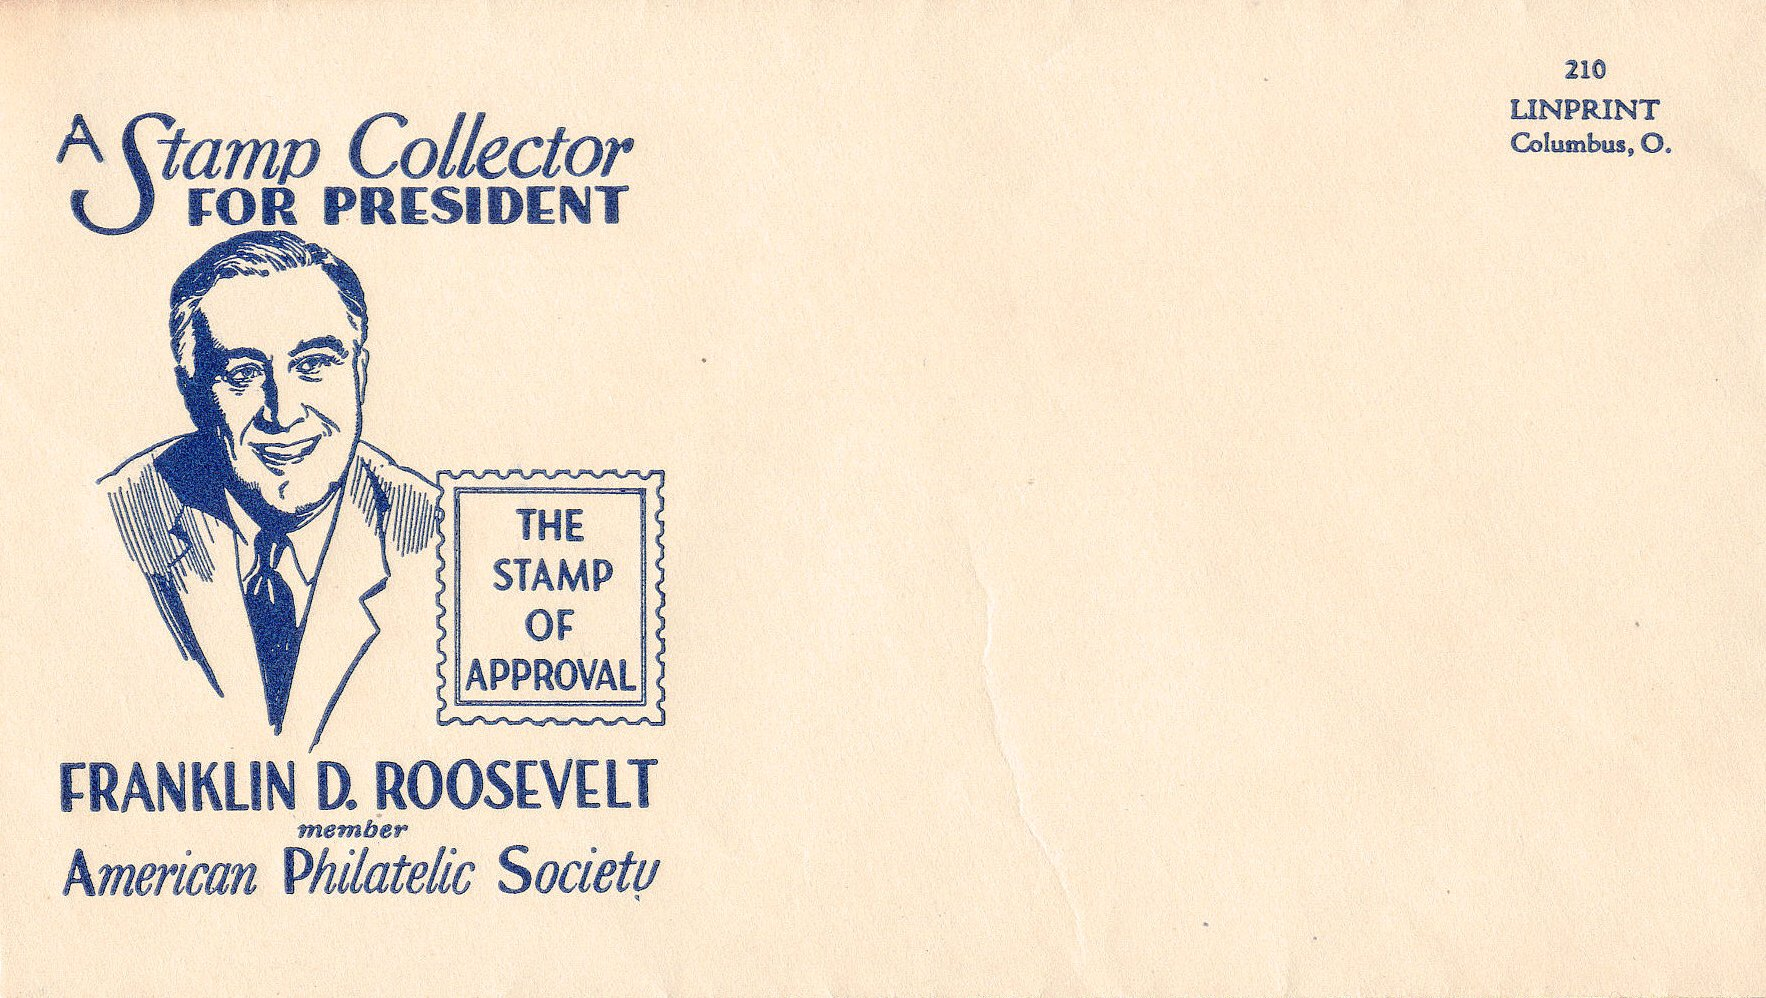 George W. Linn, publisher of the weekly philatelic newspaper Linn's Stamp News, created stamp-like labels and cacheted envelopes encouraging stamp collectors to vote for a fellow philatelist for President in the 1932 election.